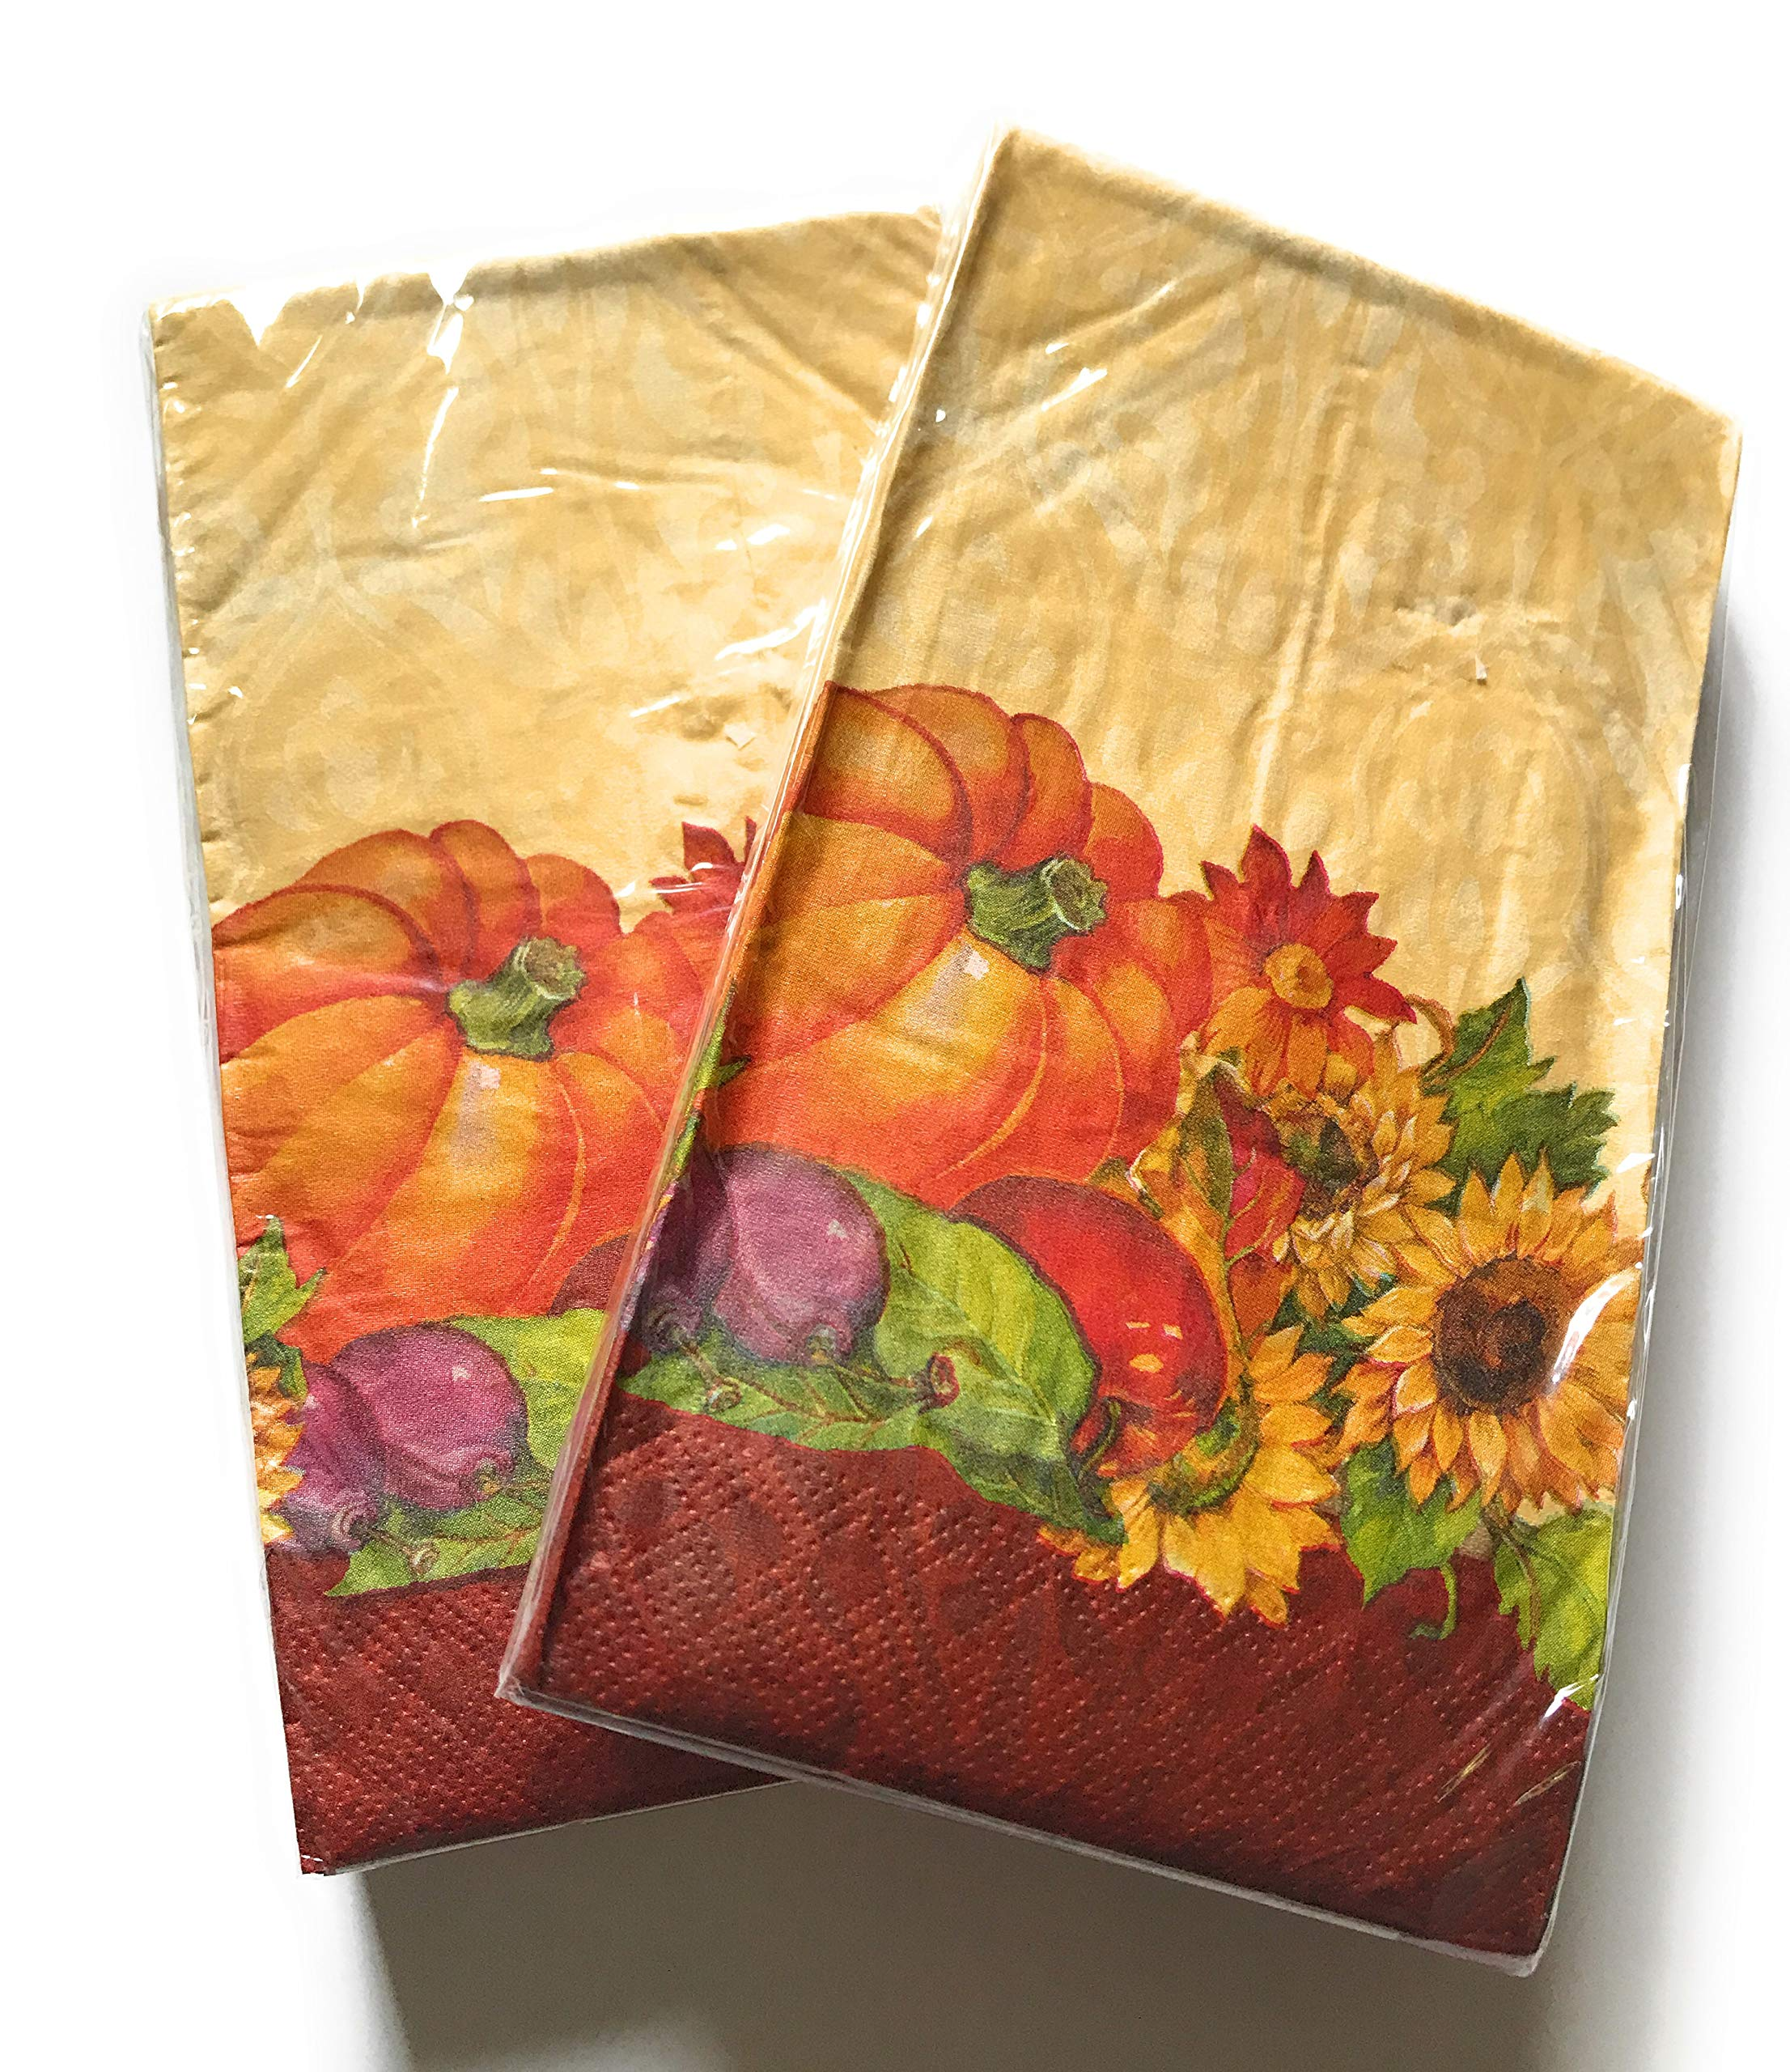 Fall Theme Paper Napkins Sets, Regal Turkey or Pumpkin Tapestry Themes - Durable 3 PLY with Beautiful Colors - 2 Sets of 16 Napkins (32 Total Napkins) - Great Value! (Turkeys)